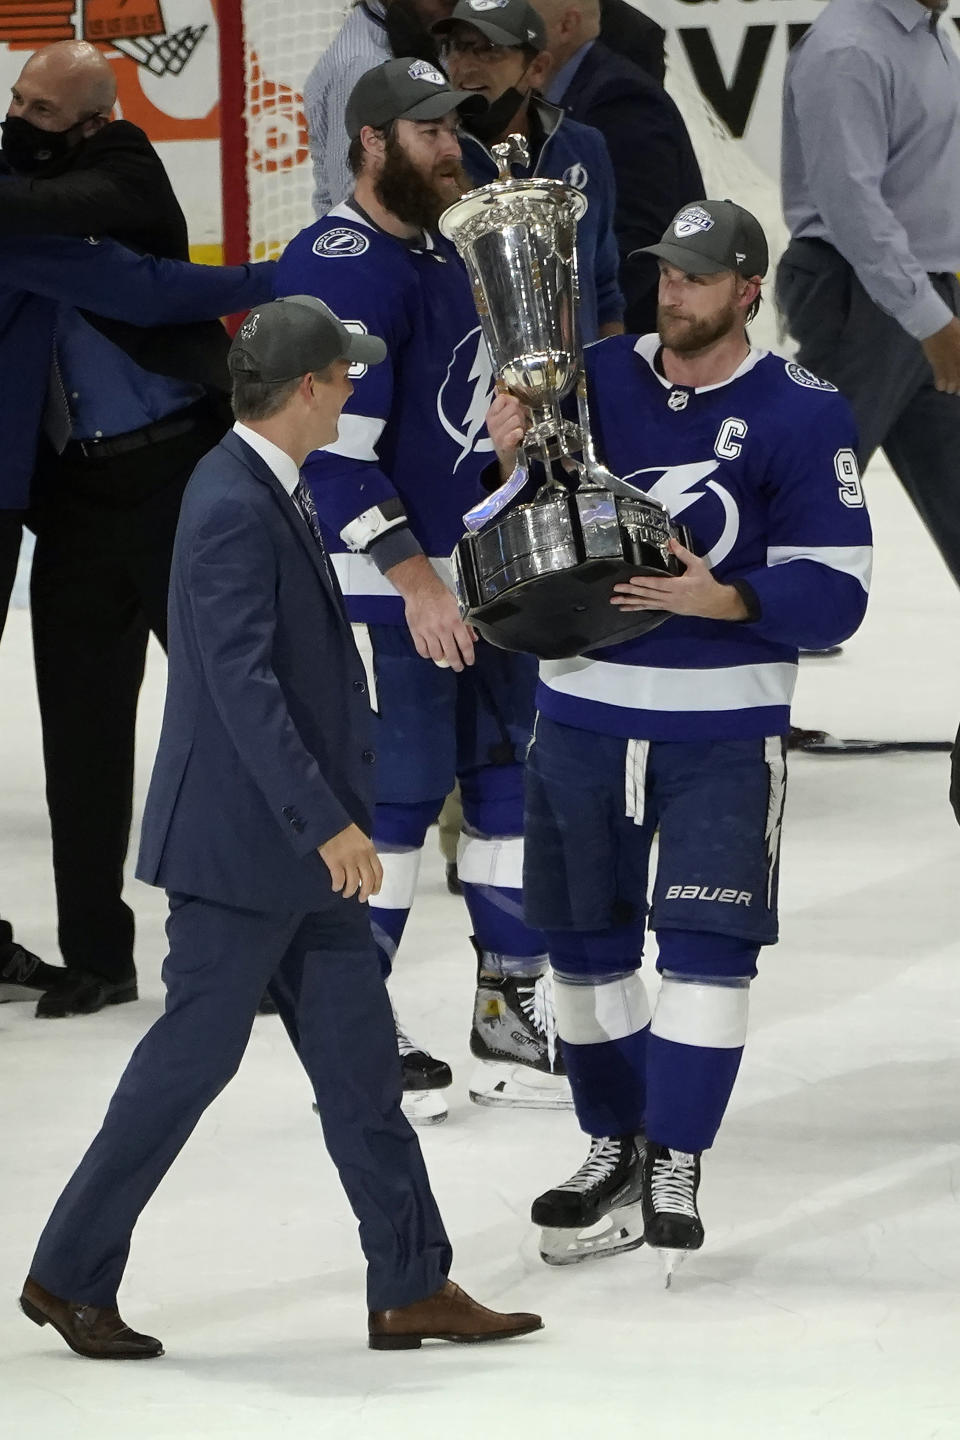 Tampa Bay Lightning center Steven Stamkos (91) holds up the Prince of Wales trophy for head coach Jon Cooper after defeating the New York Islanders during Game 7 of an NHL hockey Stanley Cup semifinal playoff series Friday, June 25, 2021, in Tampa, Fla. (AP Photo/Chris O'Meara)